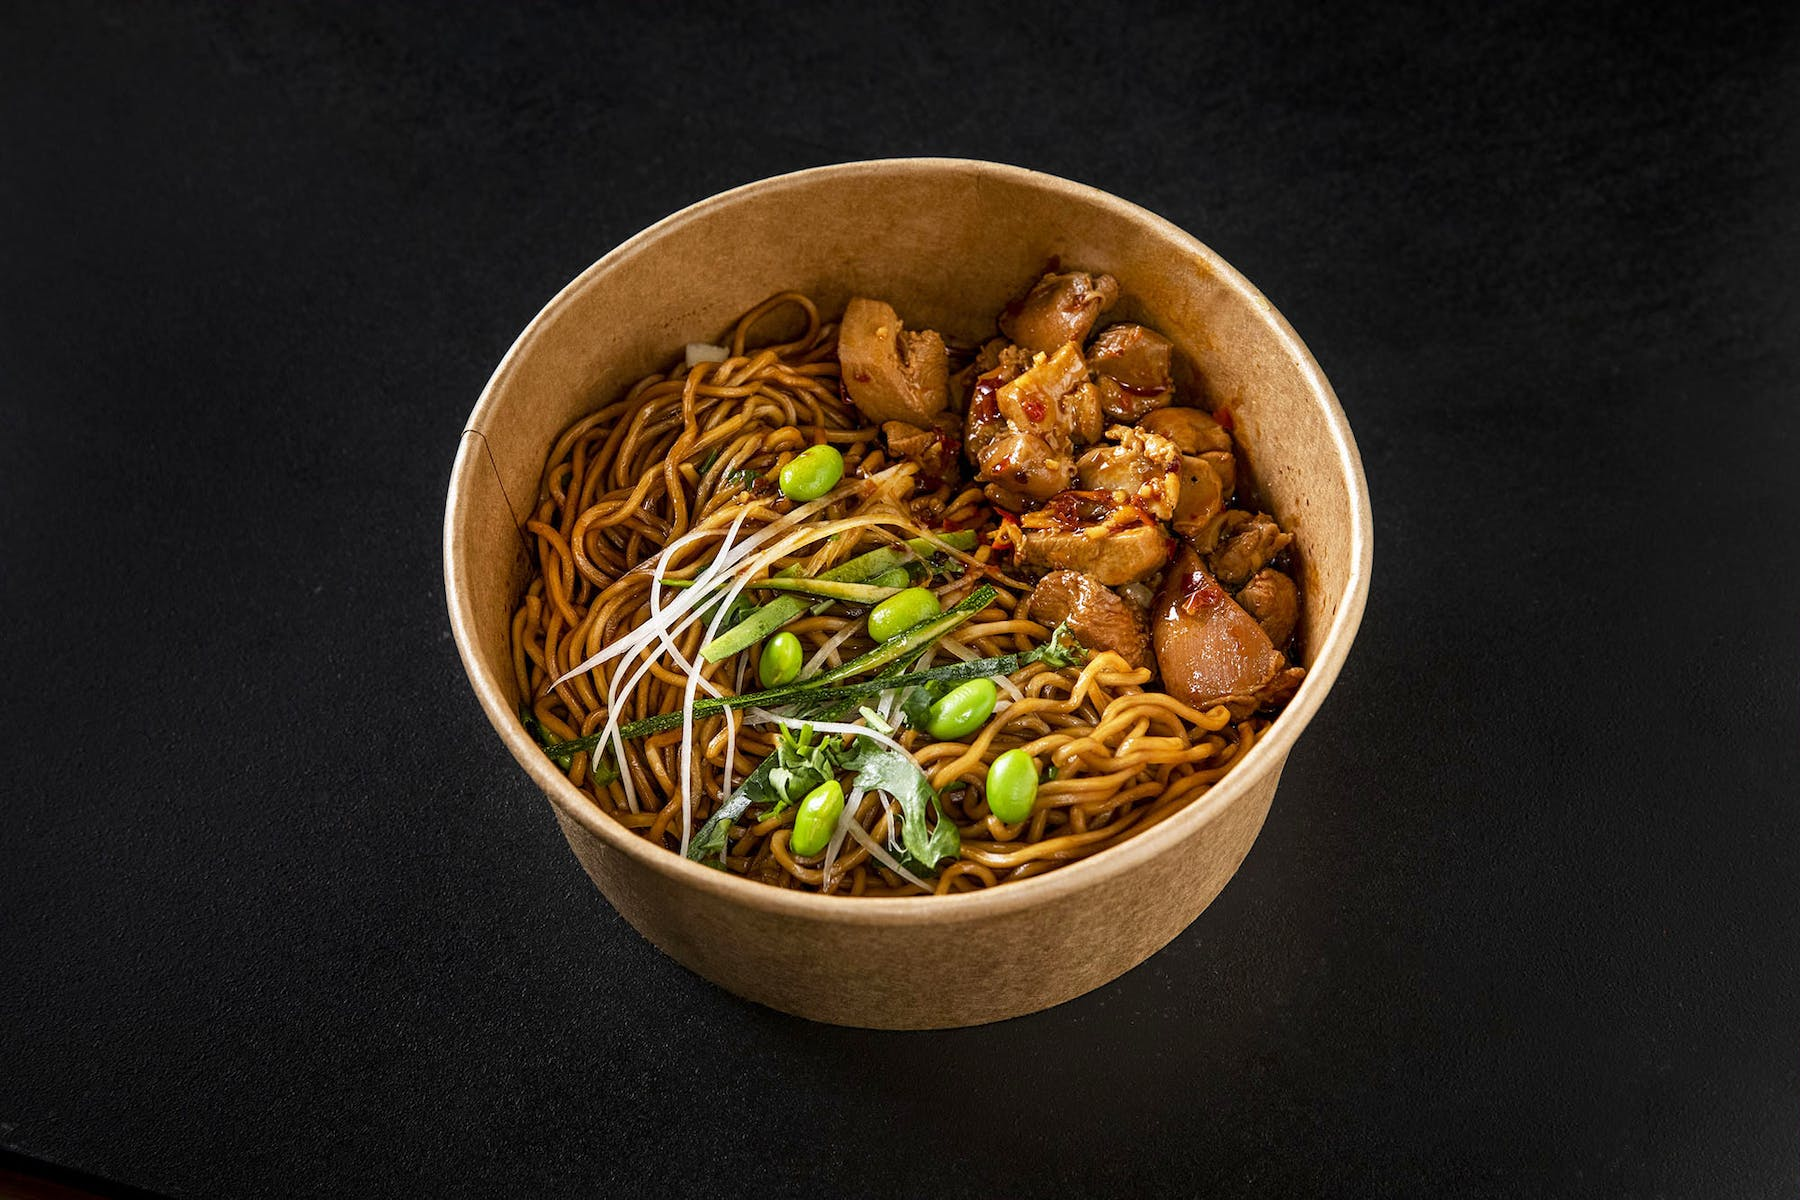 a bowl of noodles topped with veggies